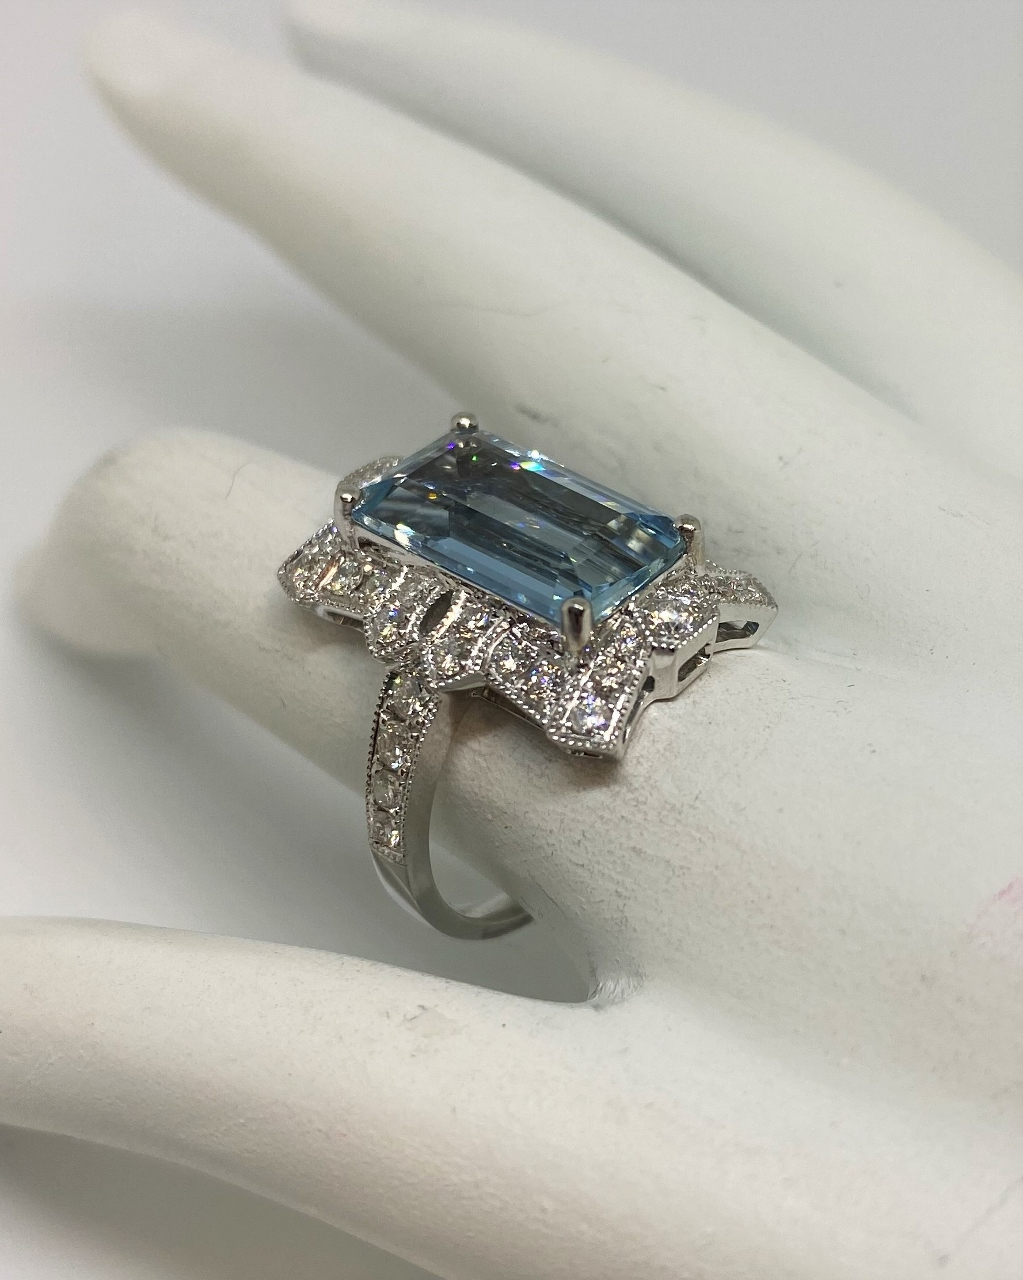 4.5 Carats Aquamarine Diamond Ring